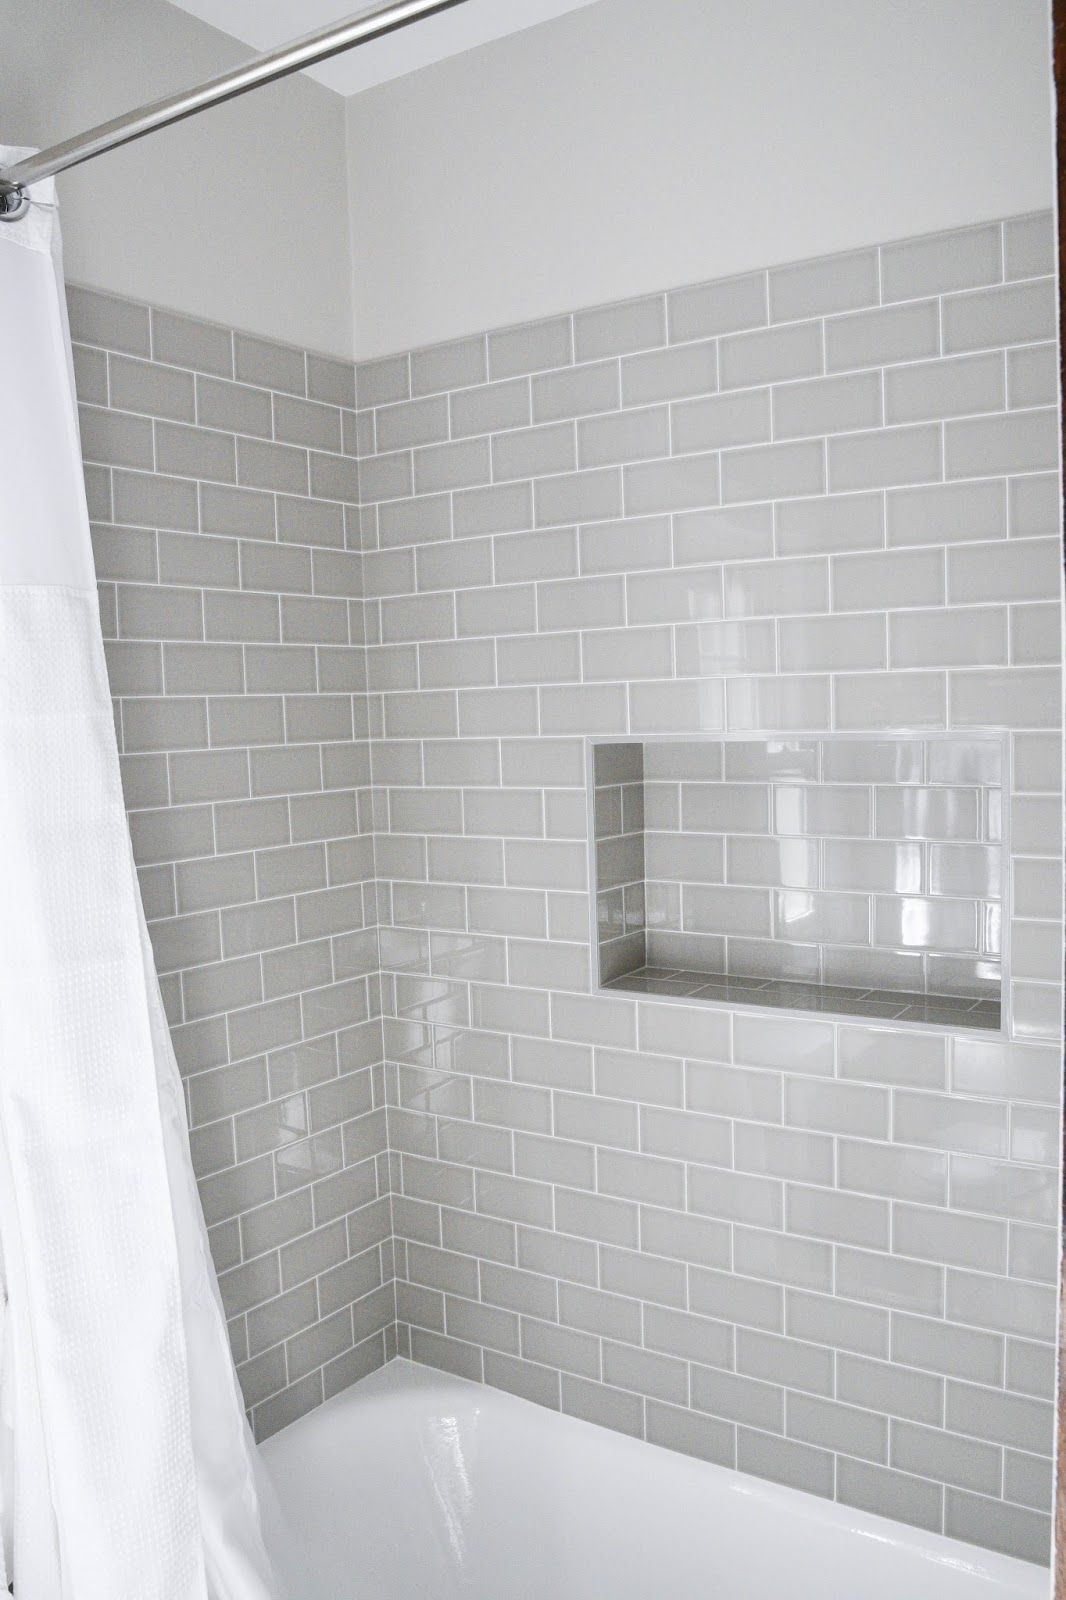 Modern meets traditional styled bathroom subway tile for Bathroom ideas using subway tile